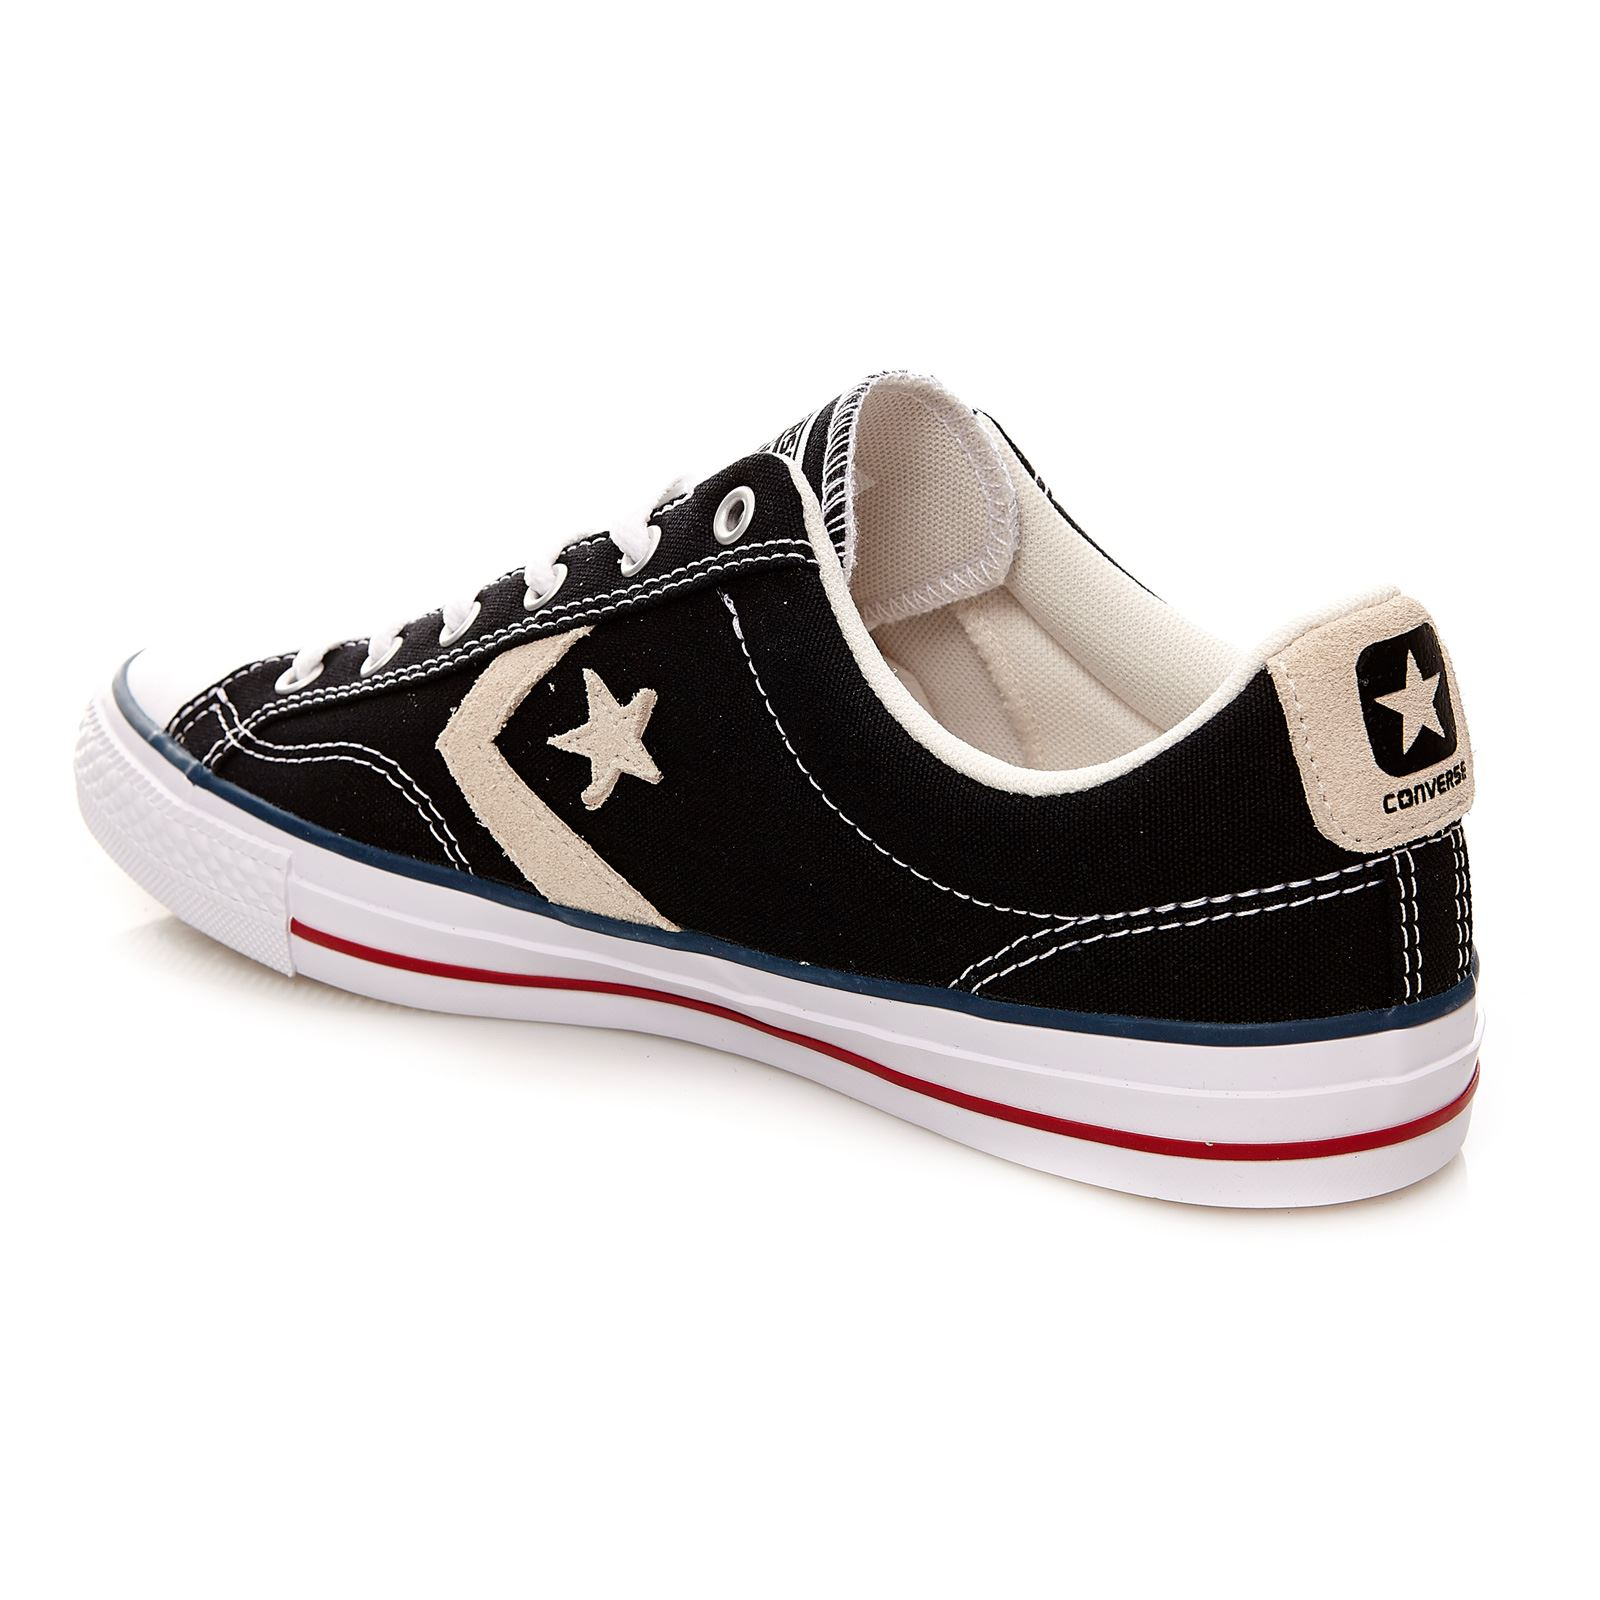 aa70ad0b399 sweden chaussures homme baskets basses converse star player noir kaki e5caf  5a606  sale converse star player ox baskets mode noir 95842 523fd